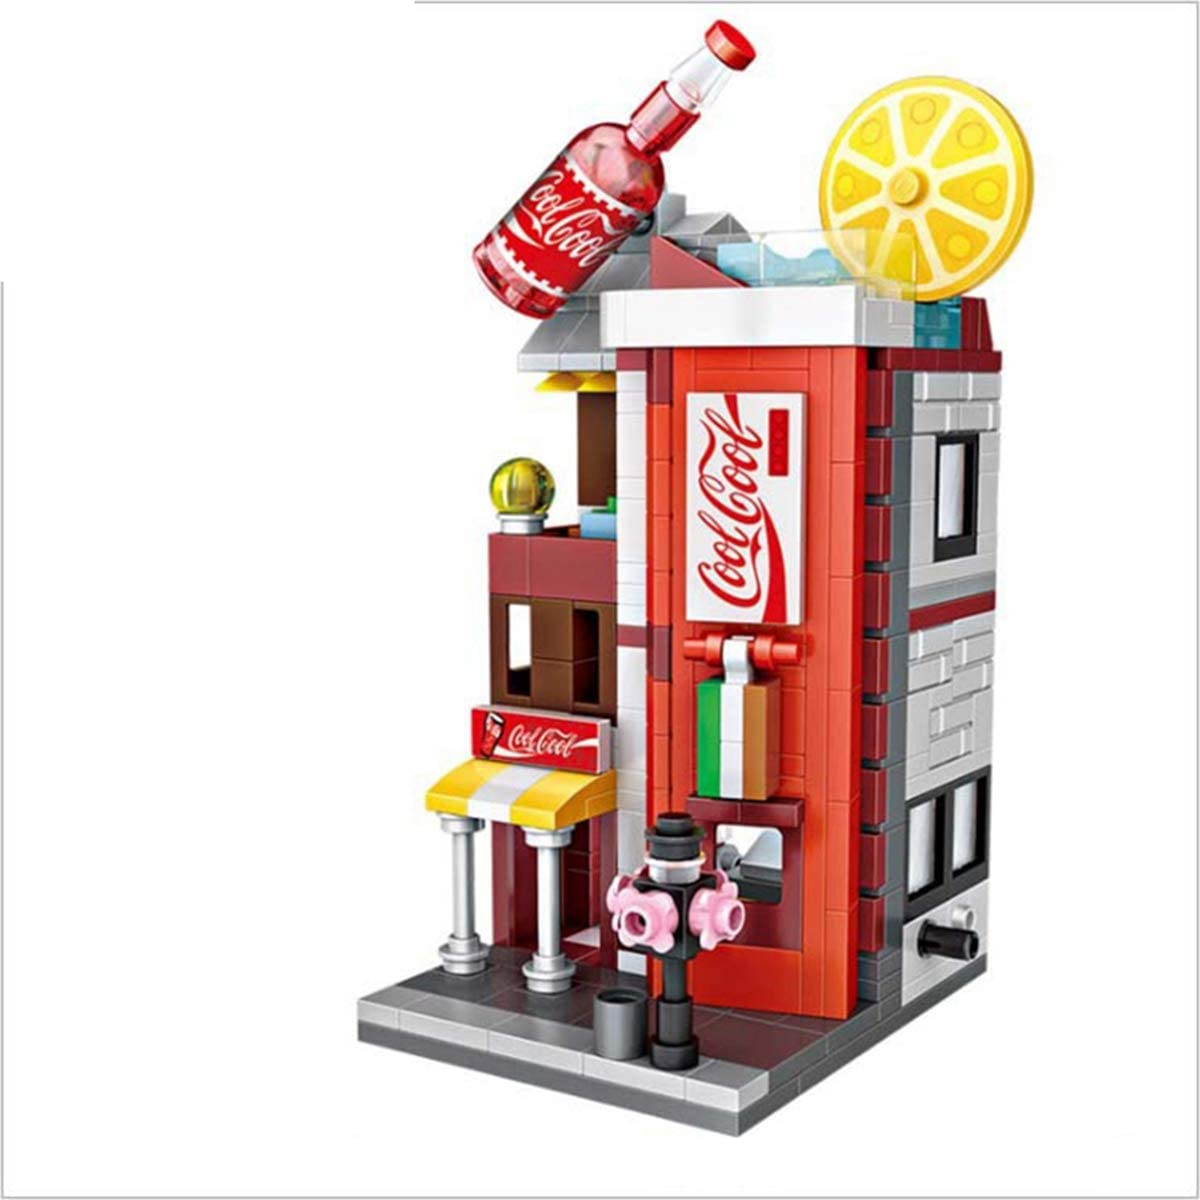 Cute Cartoon Series Micro-Drilled Small Particles Classic,Building Bricks Building Block and Mini Building Blocks Toy for Ages 12 Year Old Boys Girls /& Adults Kids CARTOON19 758PCS